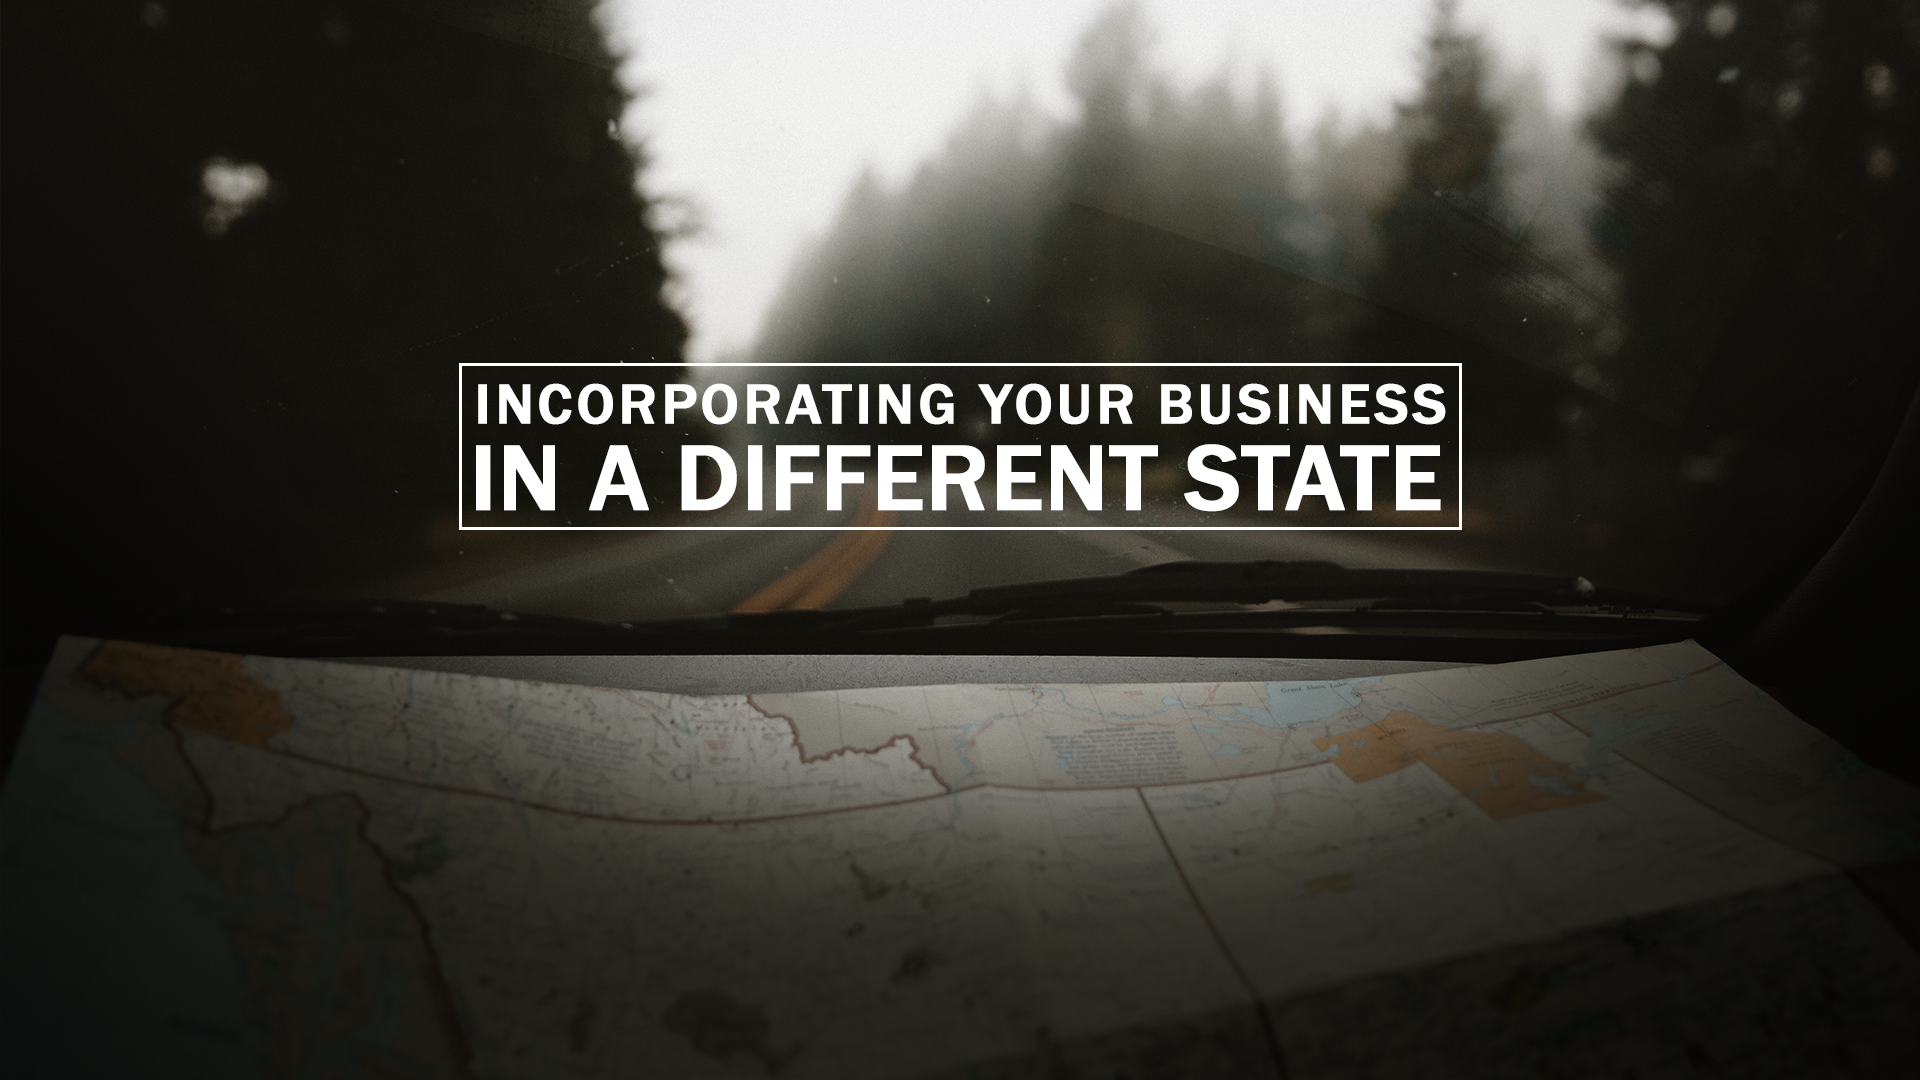 why would you incorporate your business